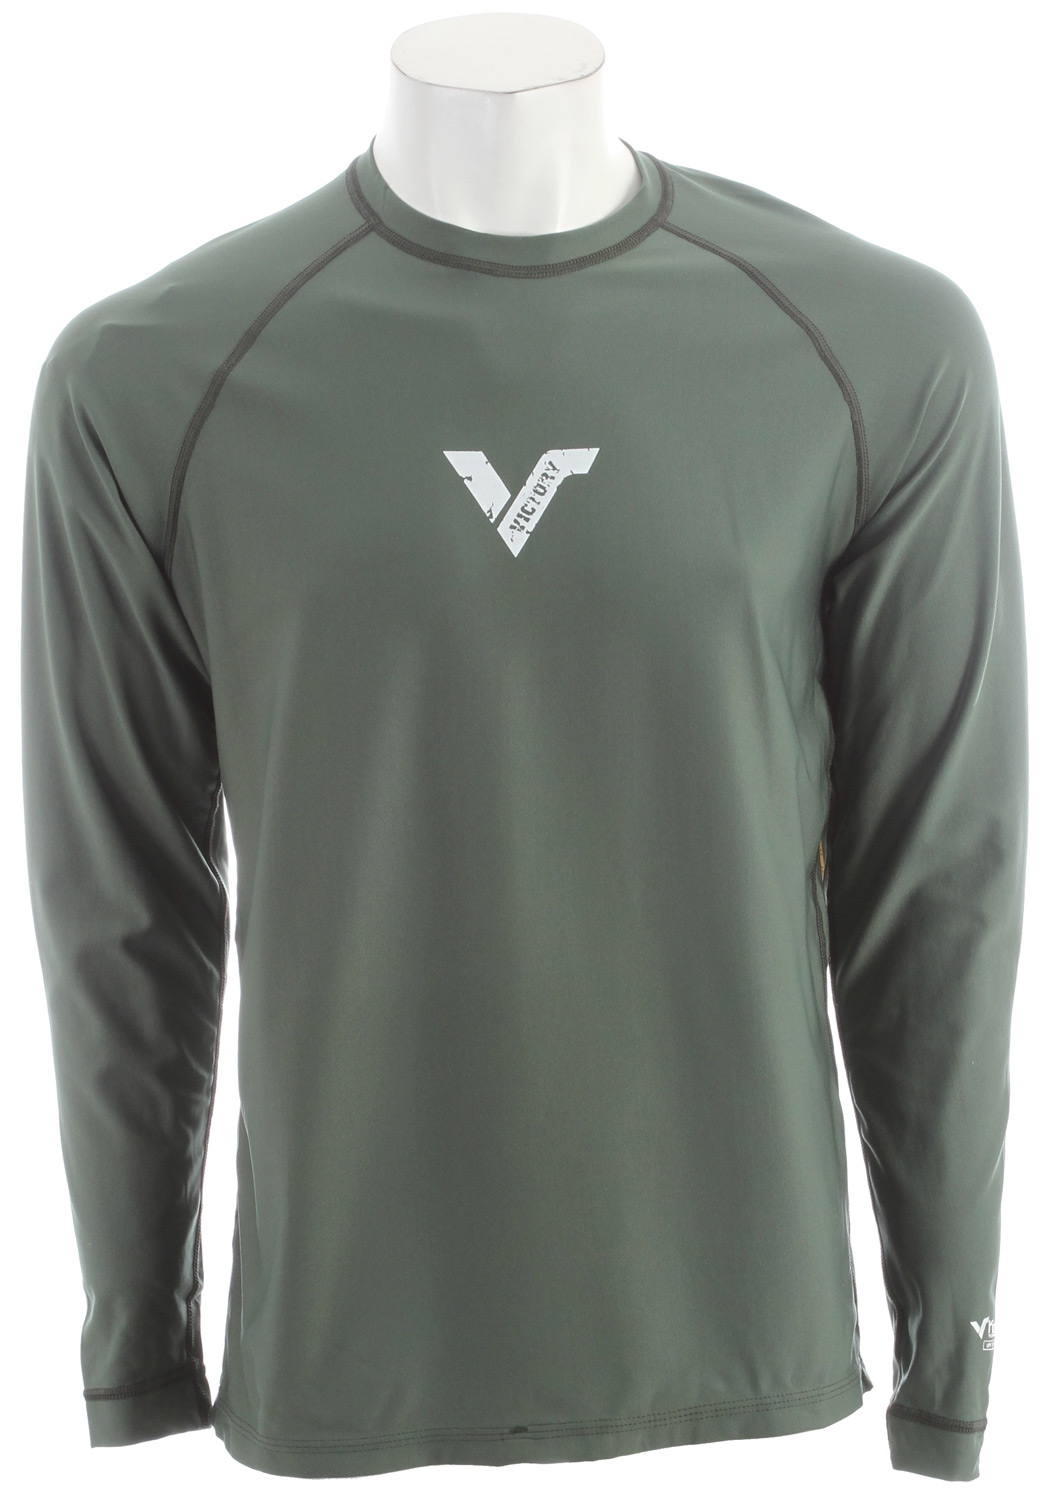 A long sleeve, light-weight shirt made from loosefit Koredry material, so it fits like a regular shirt but still has the water-repellant, quick-drying properties of Koredry. As a loosefit shirt it won't get baggy or soggy when wet, keeping you comfortable in and out of the water. The shirts feature raglan sleeves and flatlock stitching for added comfort and flexibility. Victory Koredry is UPF 50+ (equal to SPF 150+) giving you great protection against the sun and great insulation so you can stay out longer.Key Features of the Victory Koredry Loose Fit L/S Rash Guard: They feature flatlock stitching Raglan cut sleeves for superior fit and movement Triple needle cover stitch hems. - $32.95